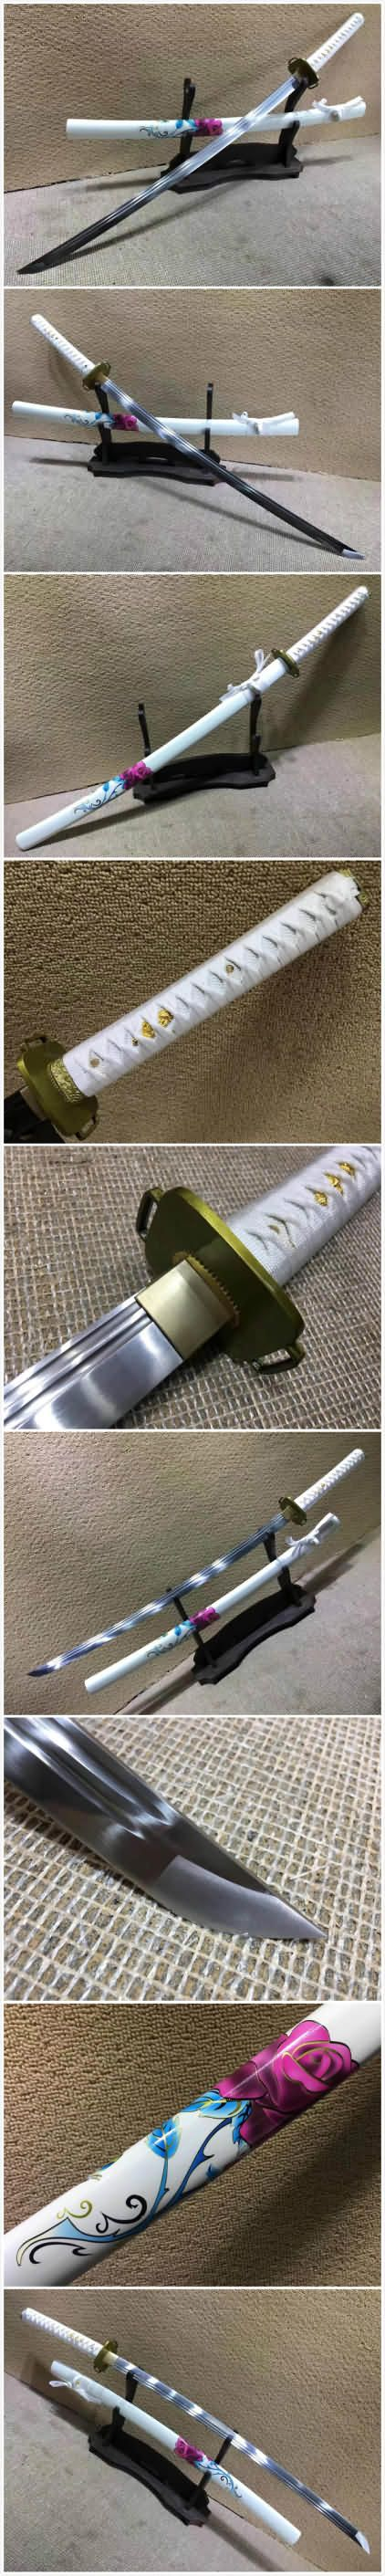 Samurai sword,High carbon steel,White scabbard,Alloy fitteds,Length 39 inch